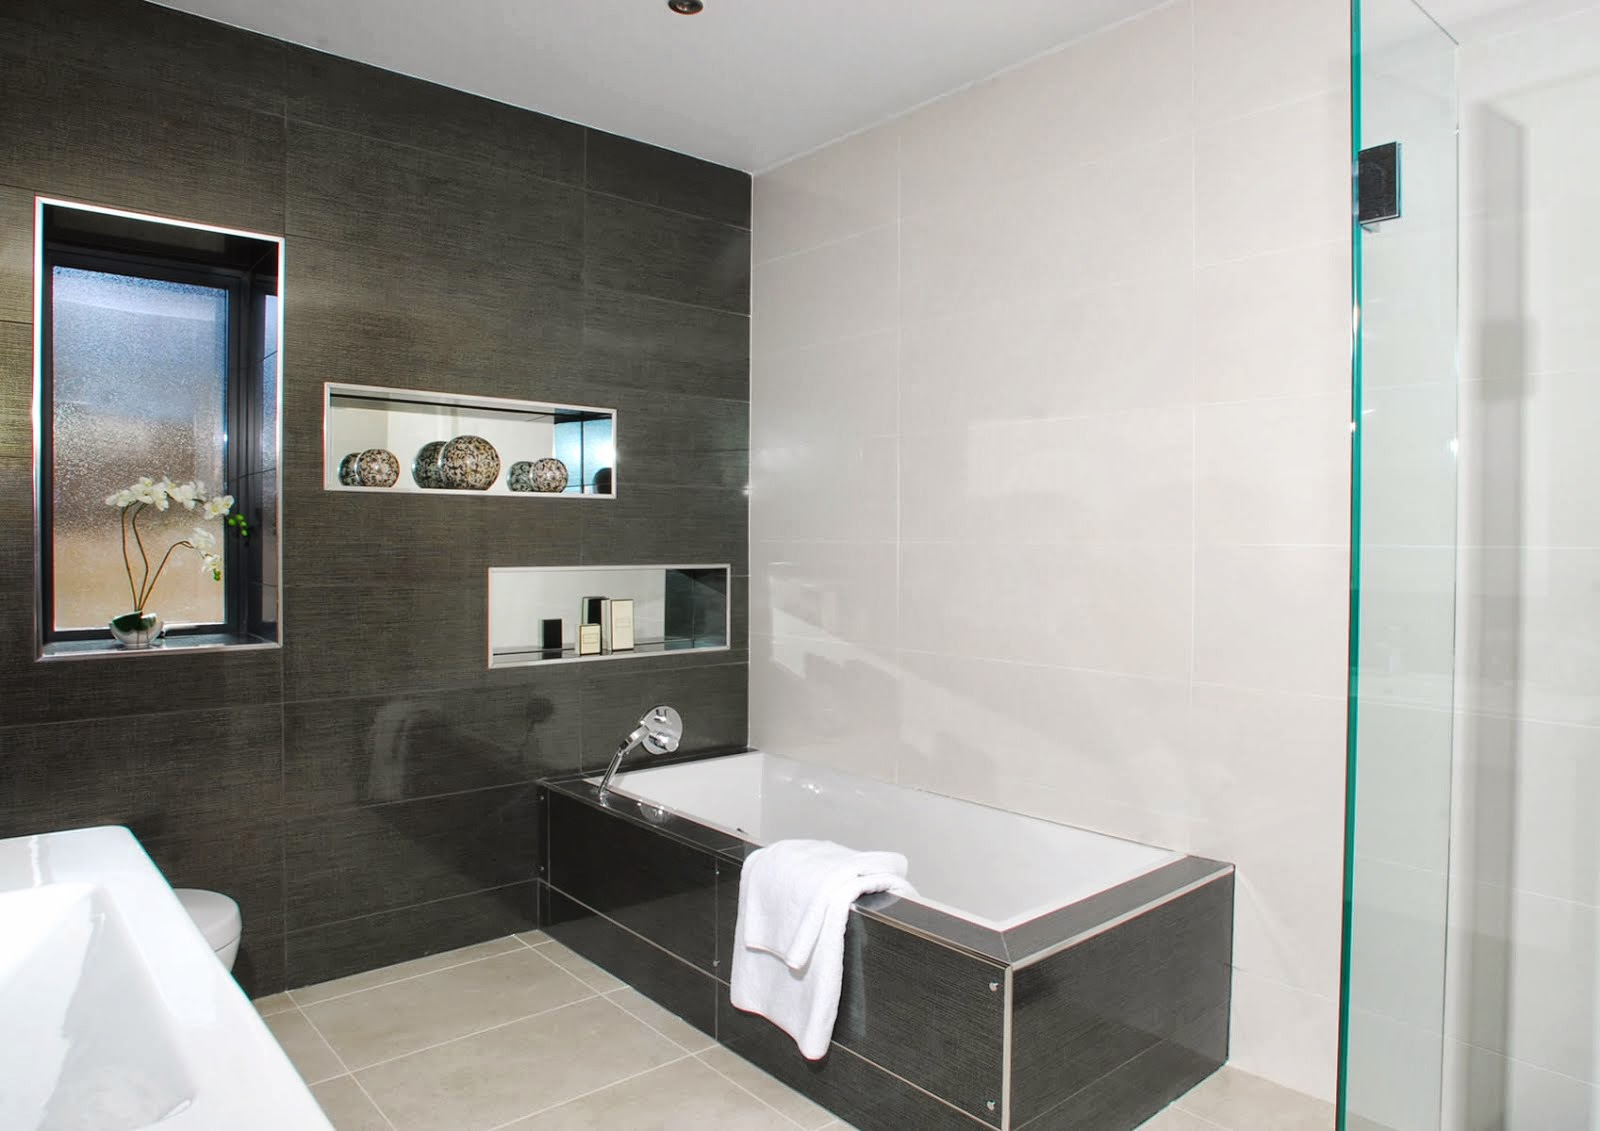 Bathroom design ideas uk for Bathroom inspiration